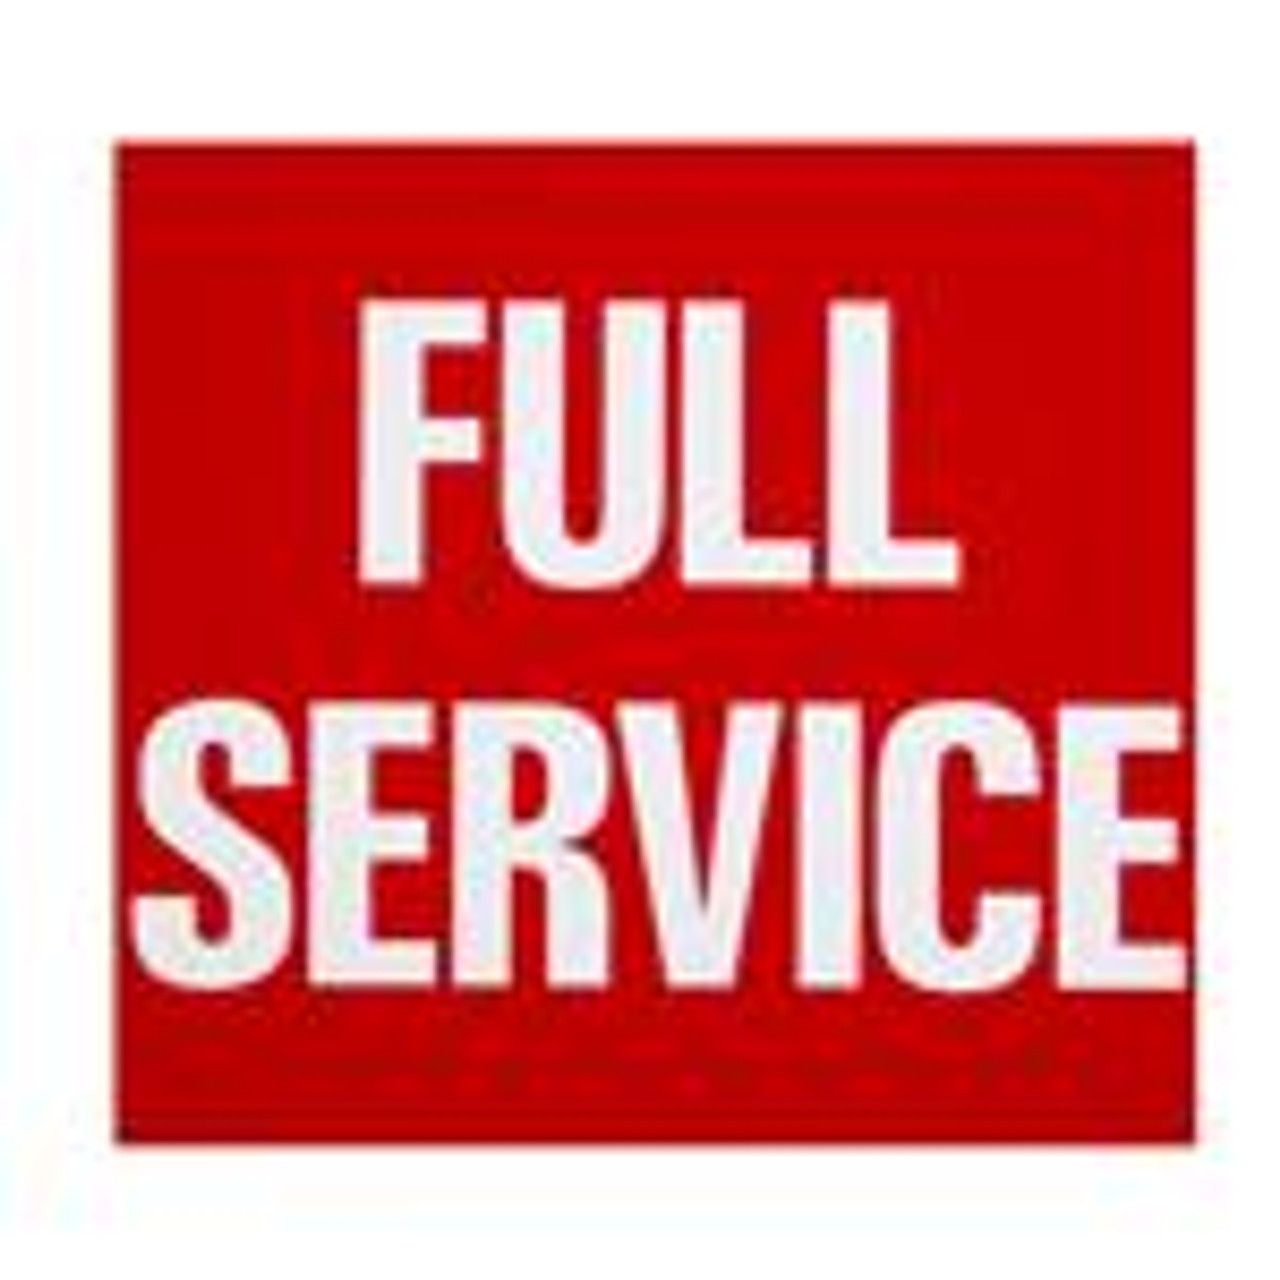 797401 - Vue-T-Fuel Sign Insert Double Sided Self Service/Full Service